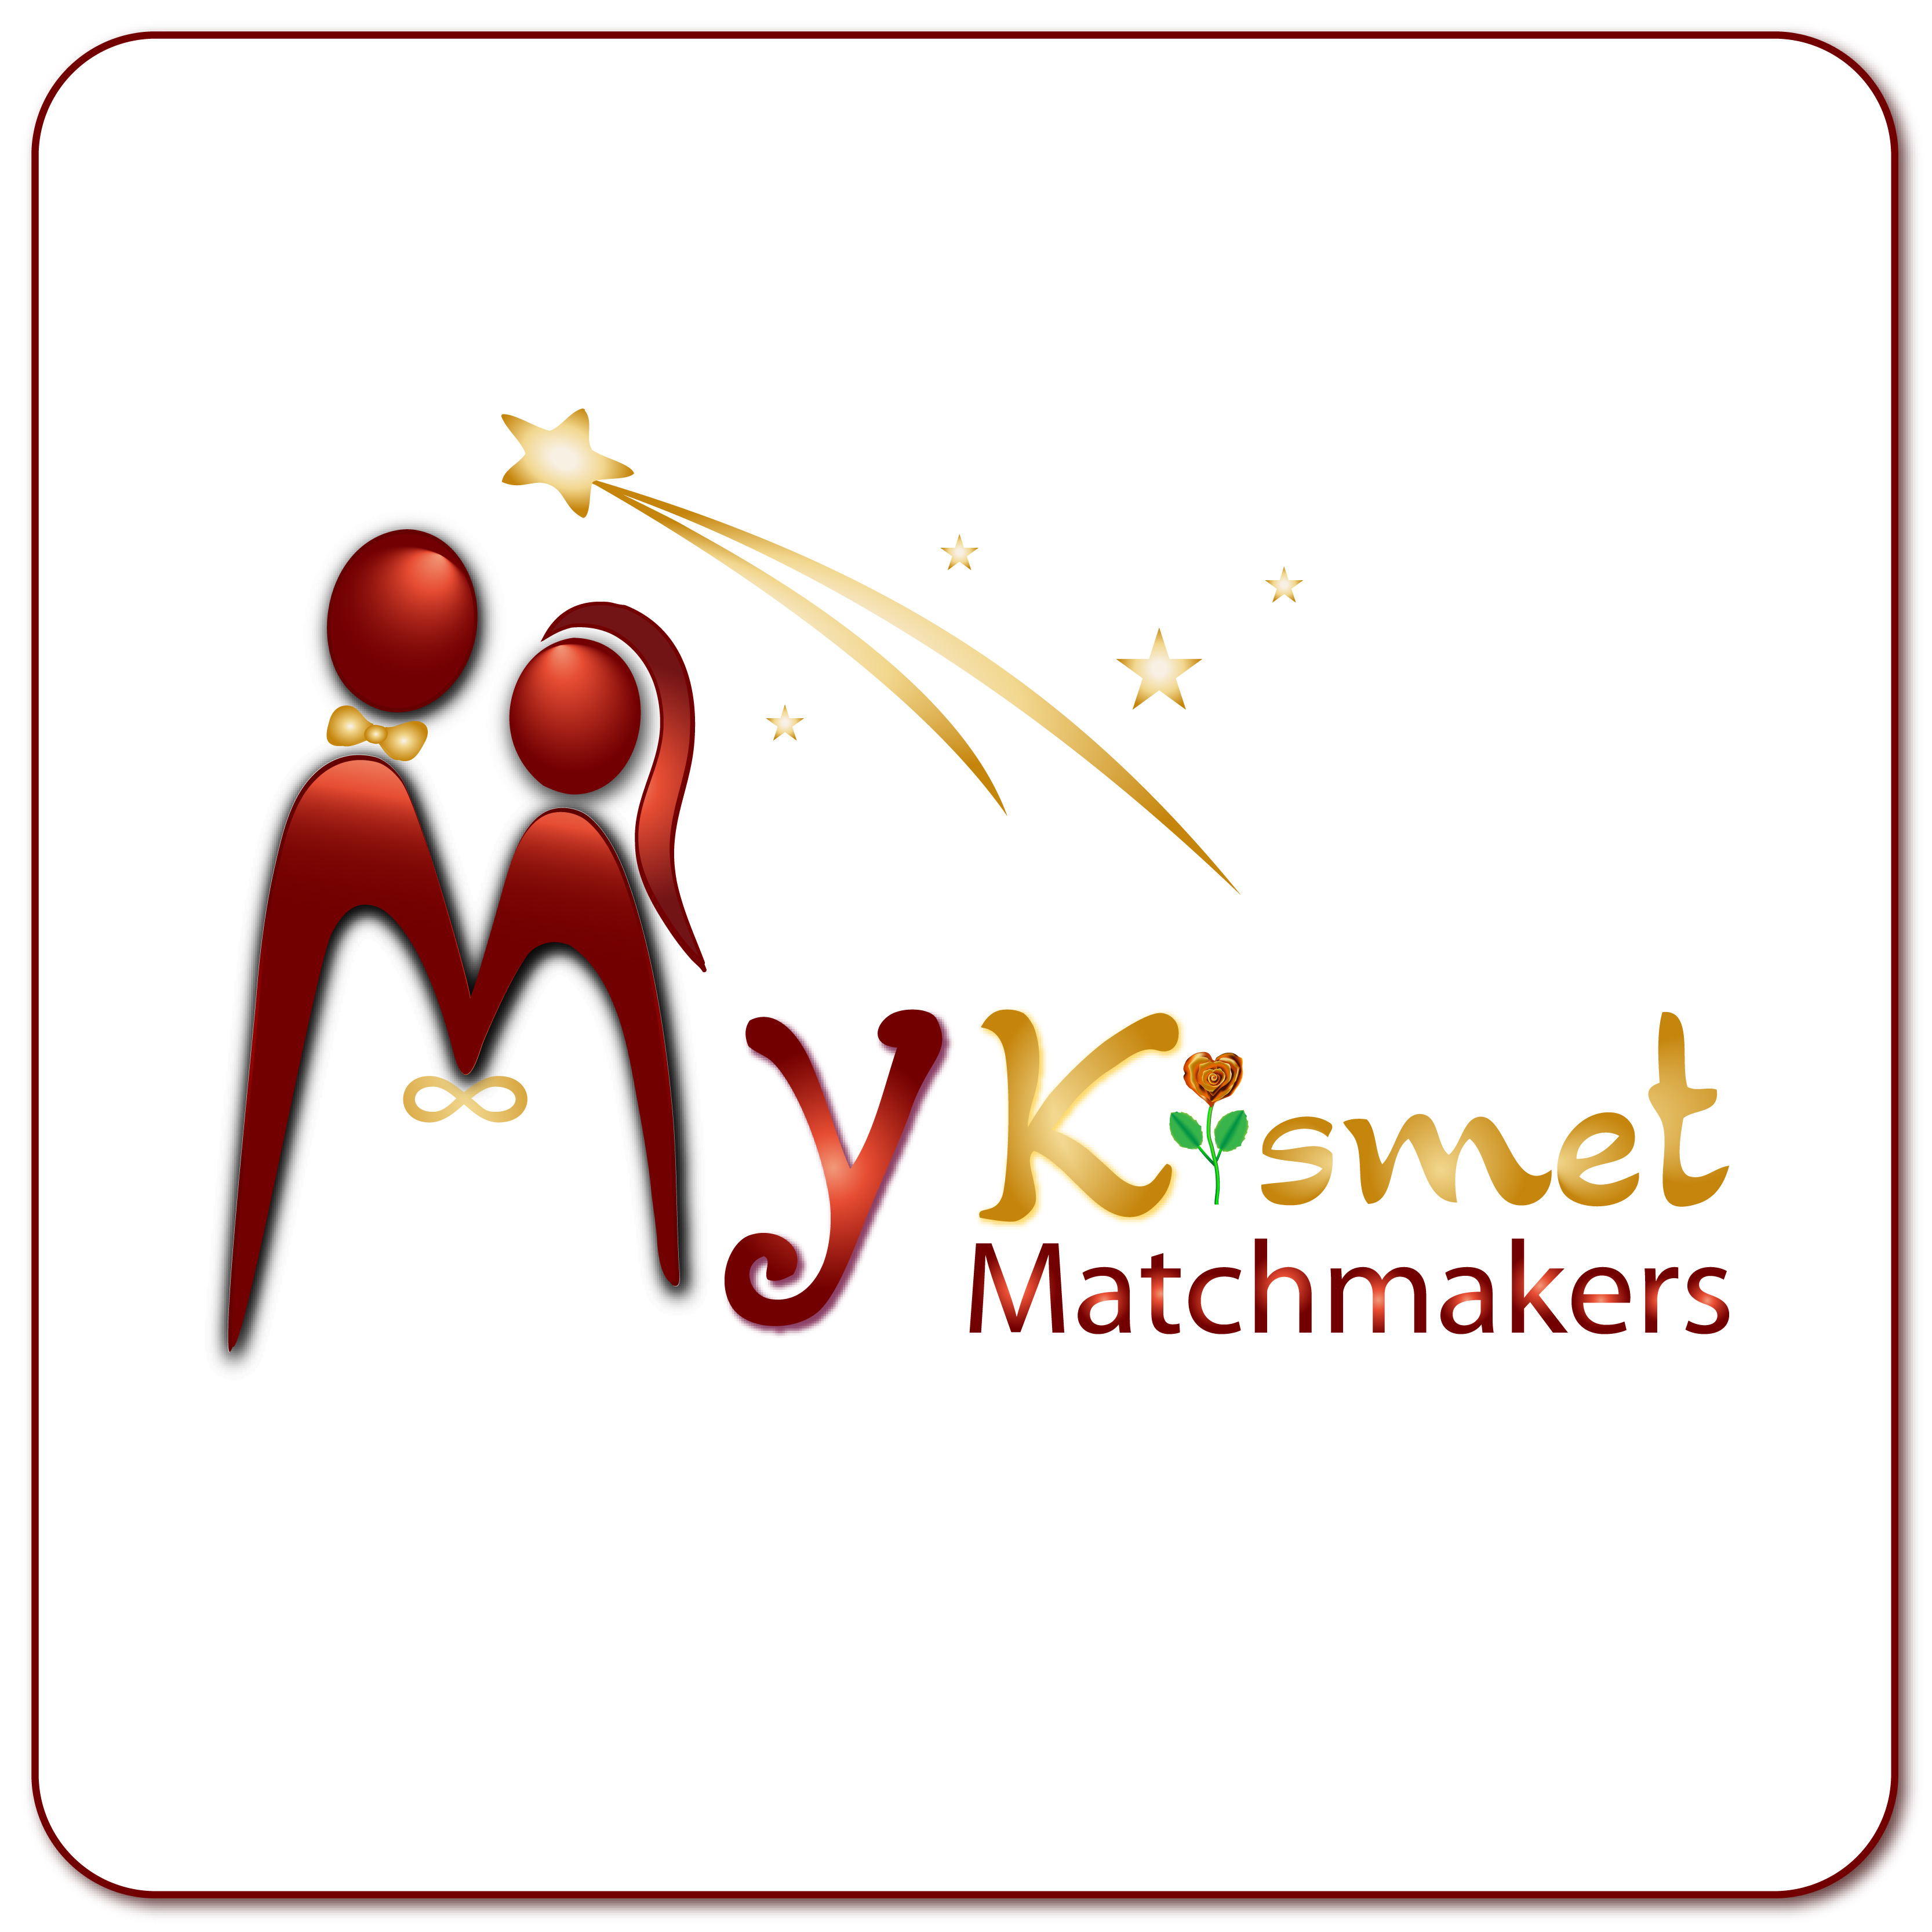 Logo Design job – Logo Design for Professional Matchmaking Service – Winning design by UsBeingUs.com - Debs